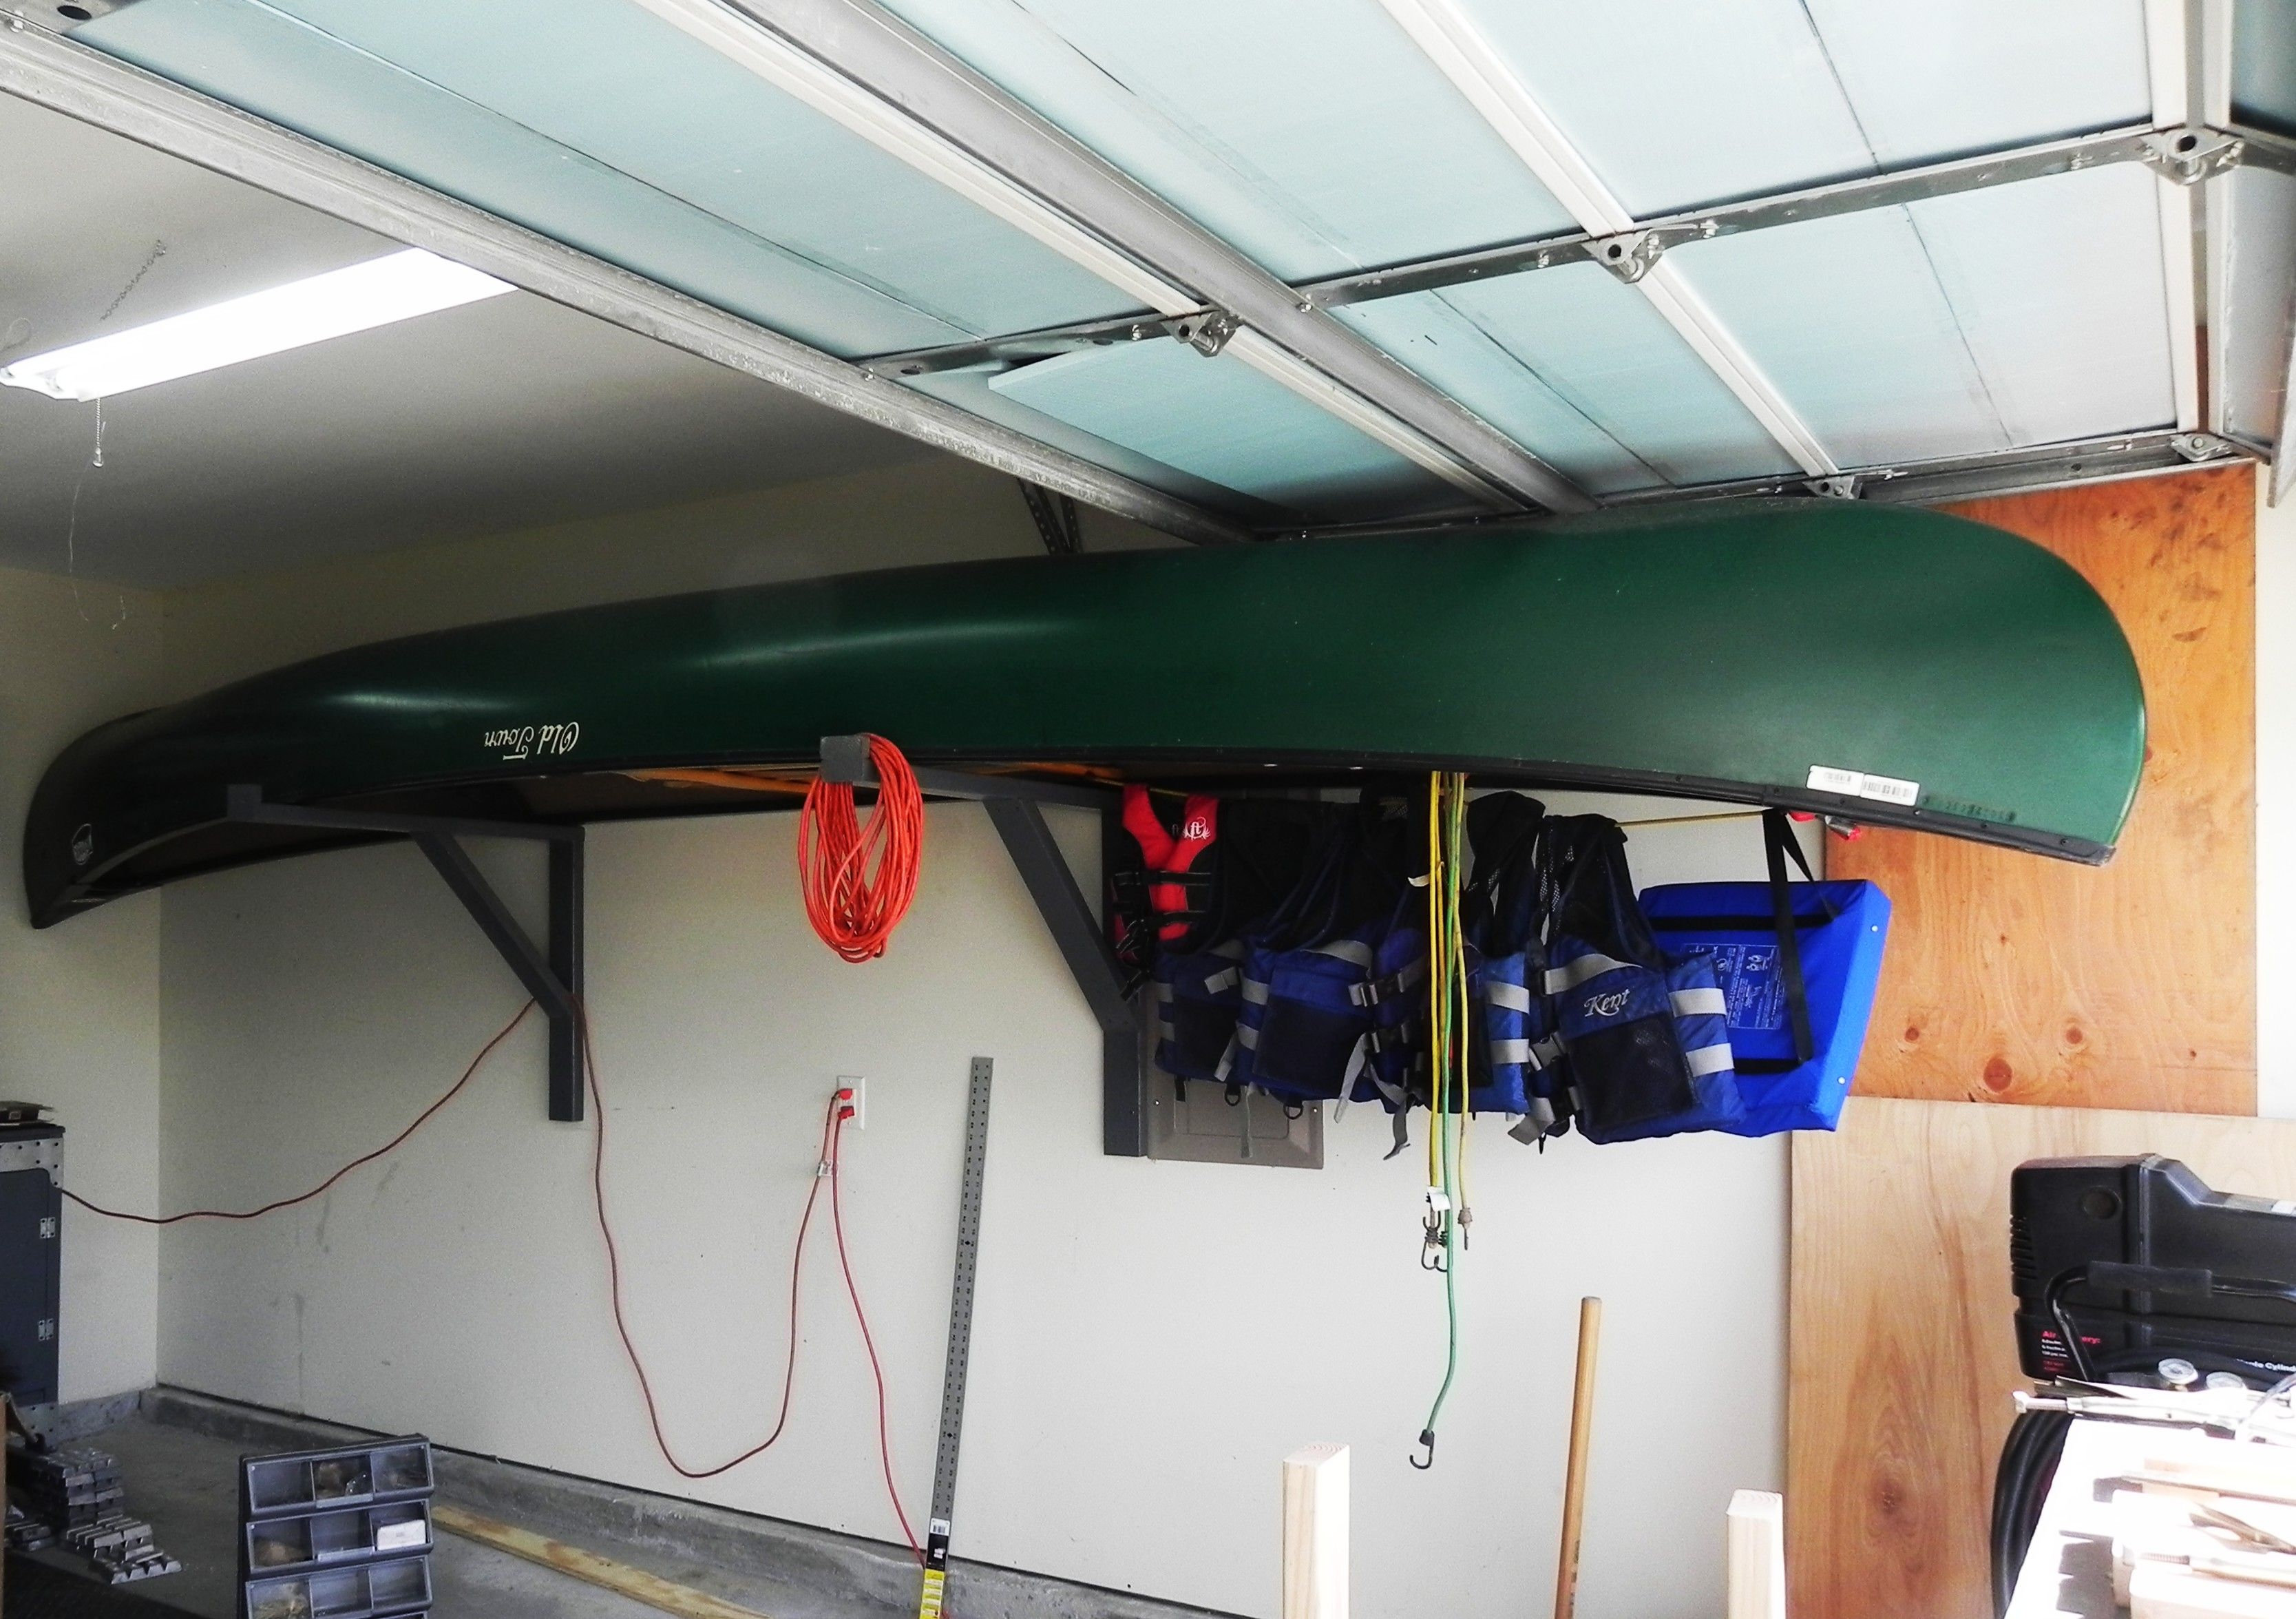 How To Hang A 17 Ft Canoe In A 19 Ft Garage. The Canoe Is Just Low Enough  Where The Garage Door Can Open And Close With Out Hitting It.